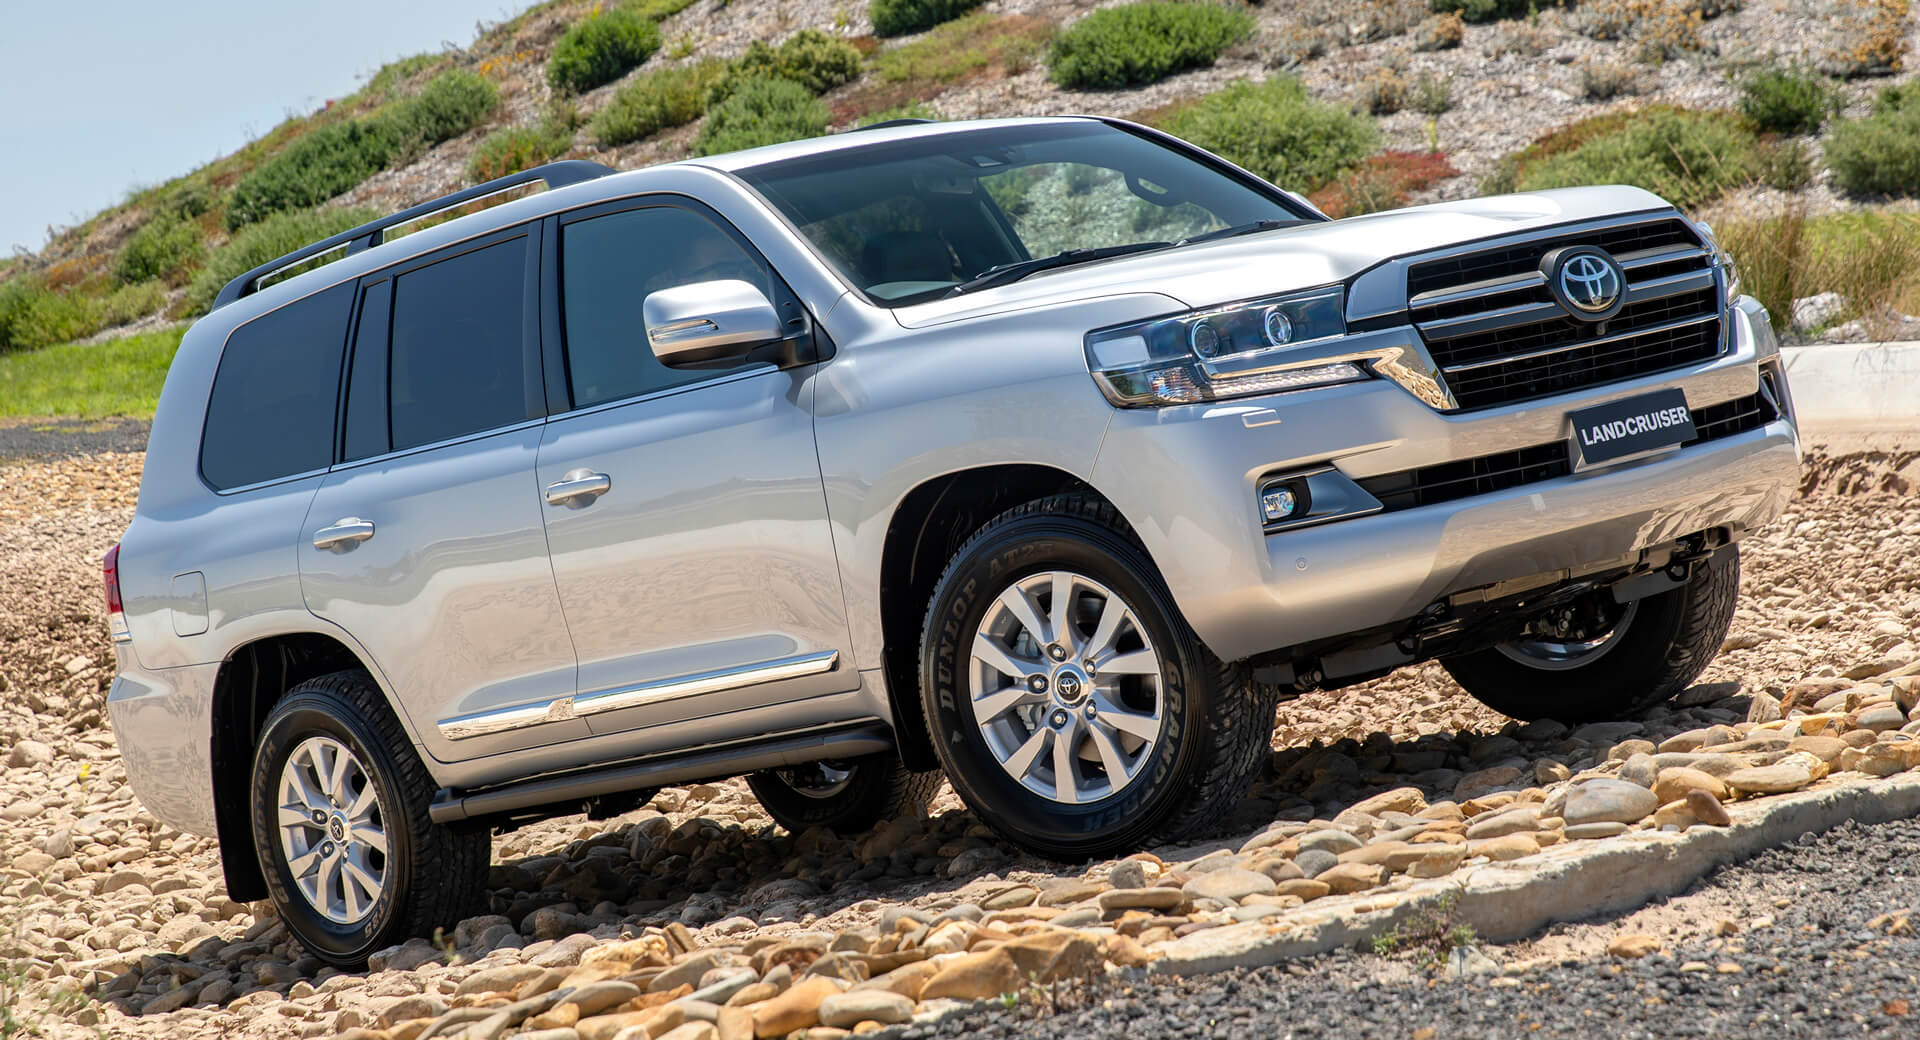 The Toyota Land Cruiser 2022 will take place on June 9th